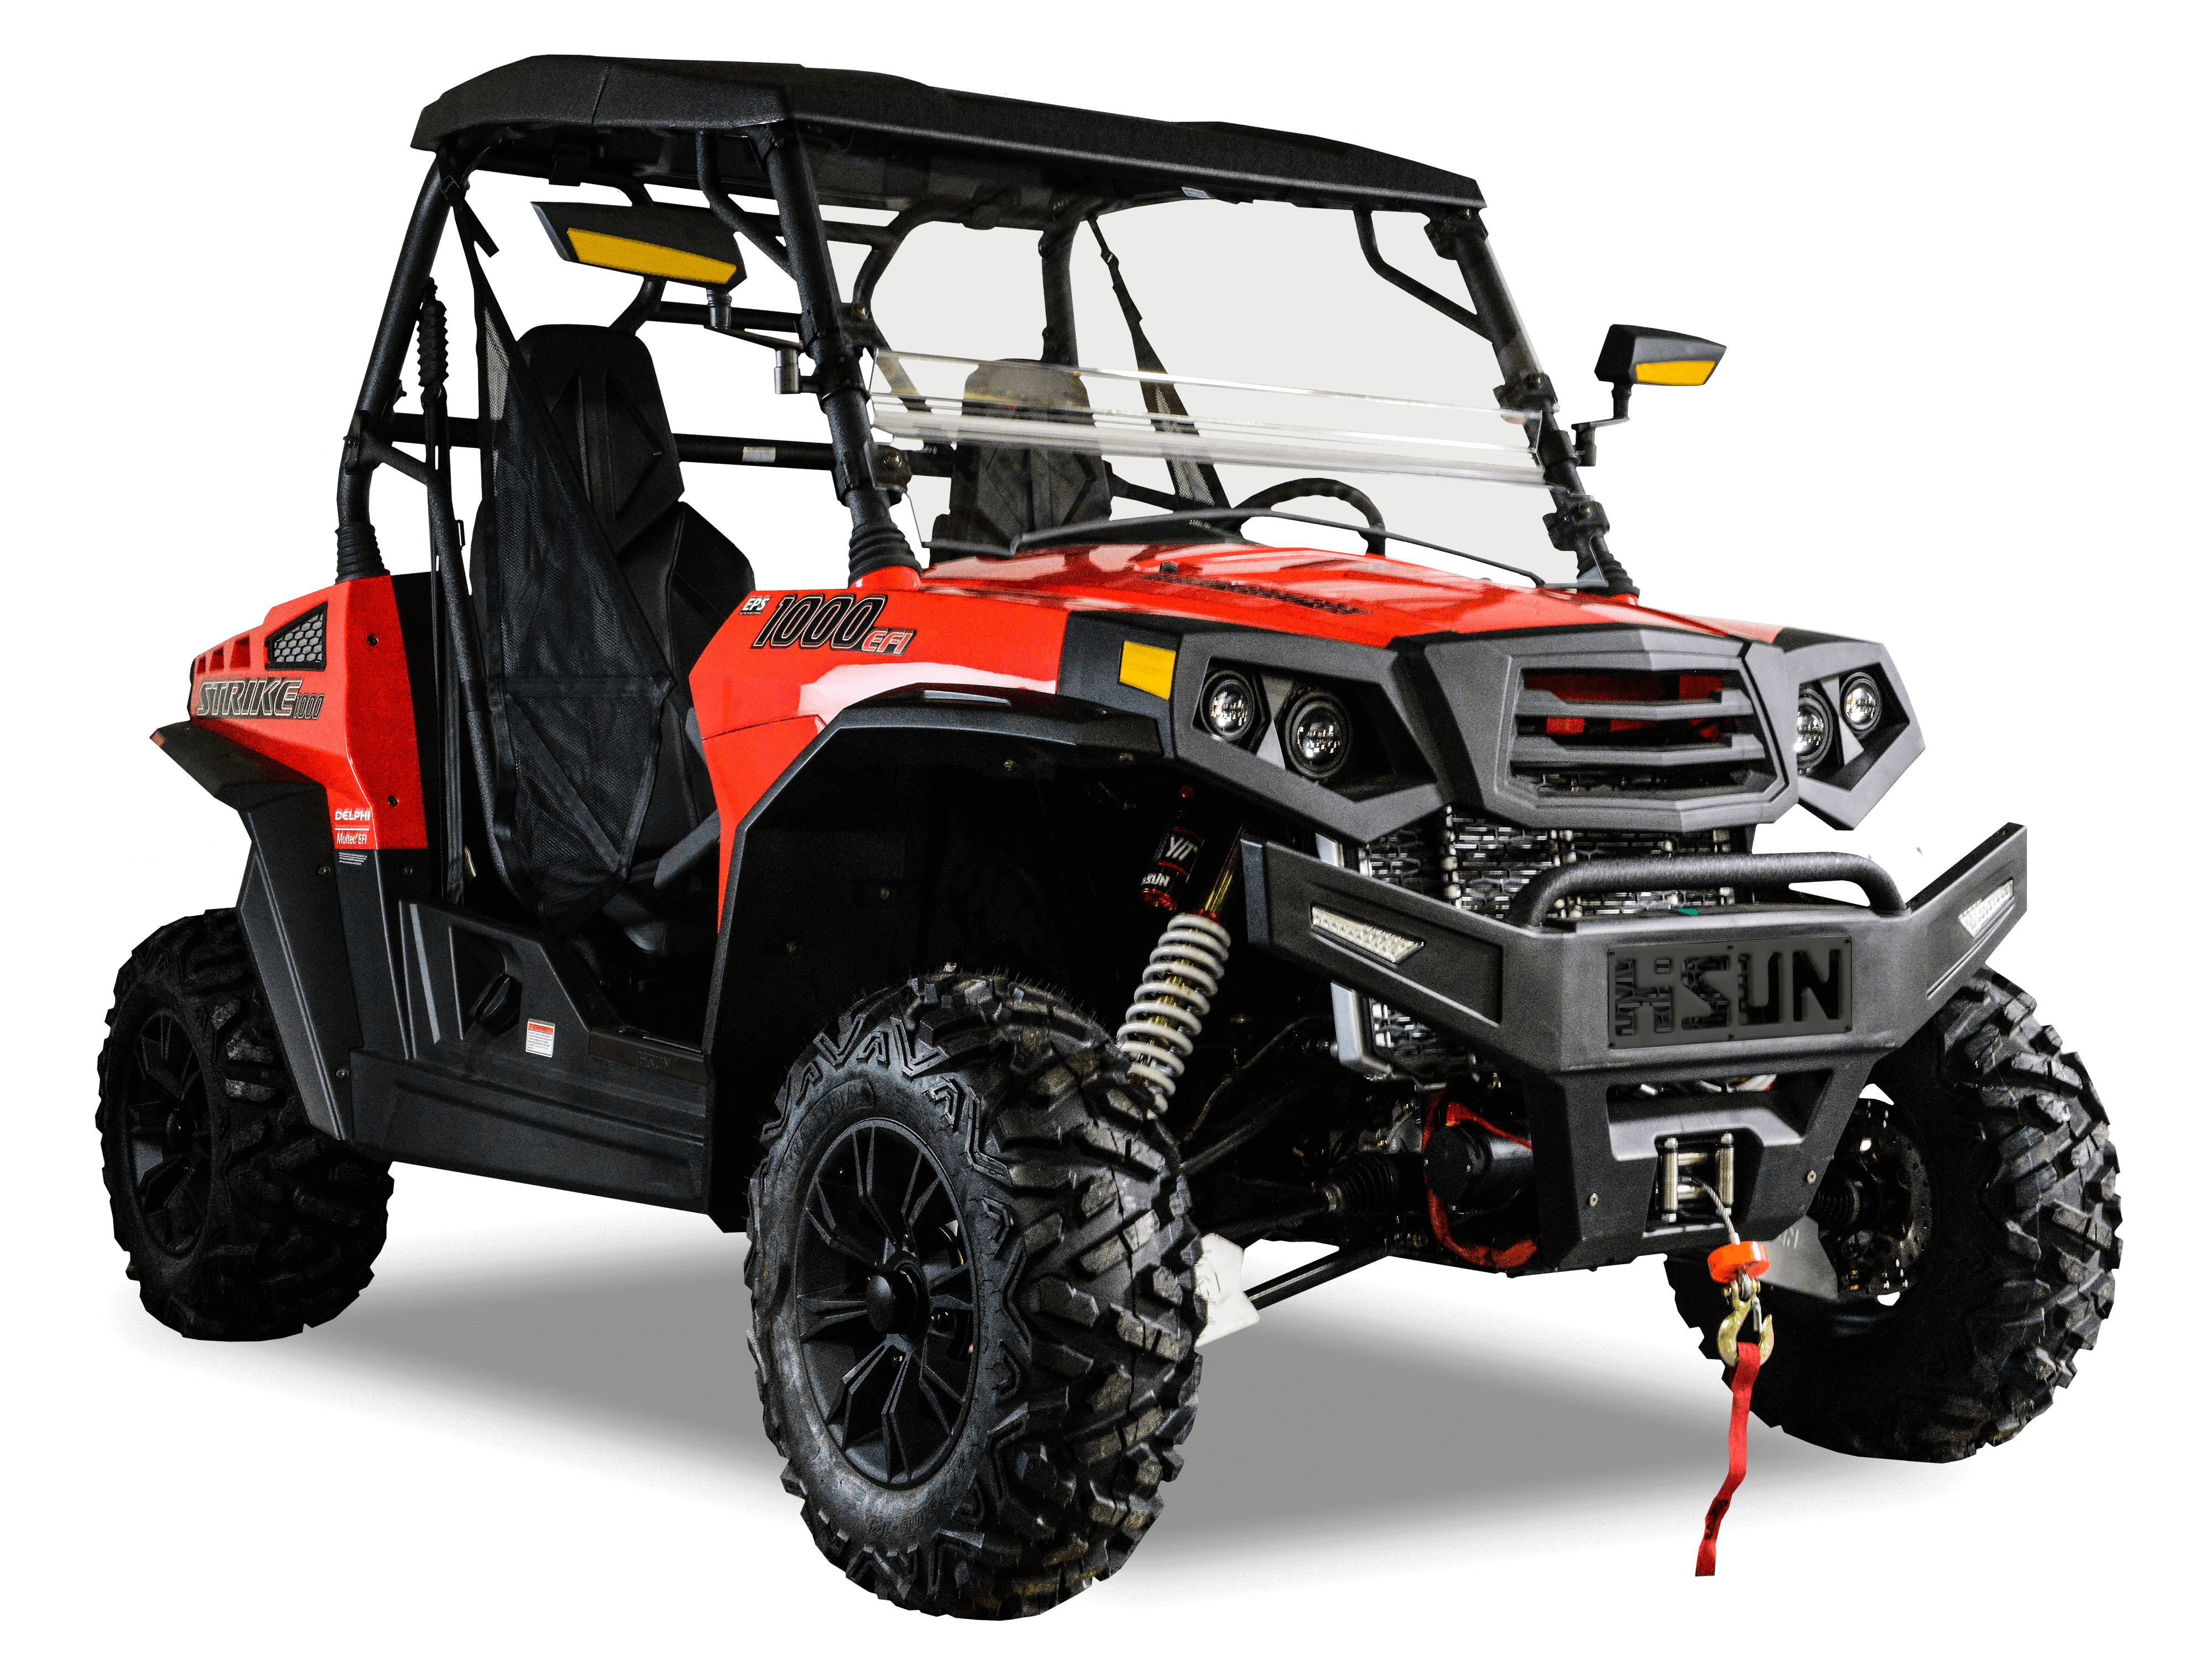 A Look Into Hisun Side-By-Side Powersport Vehicles